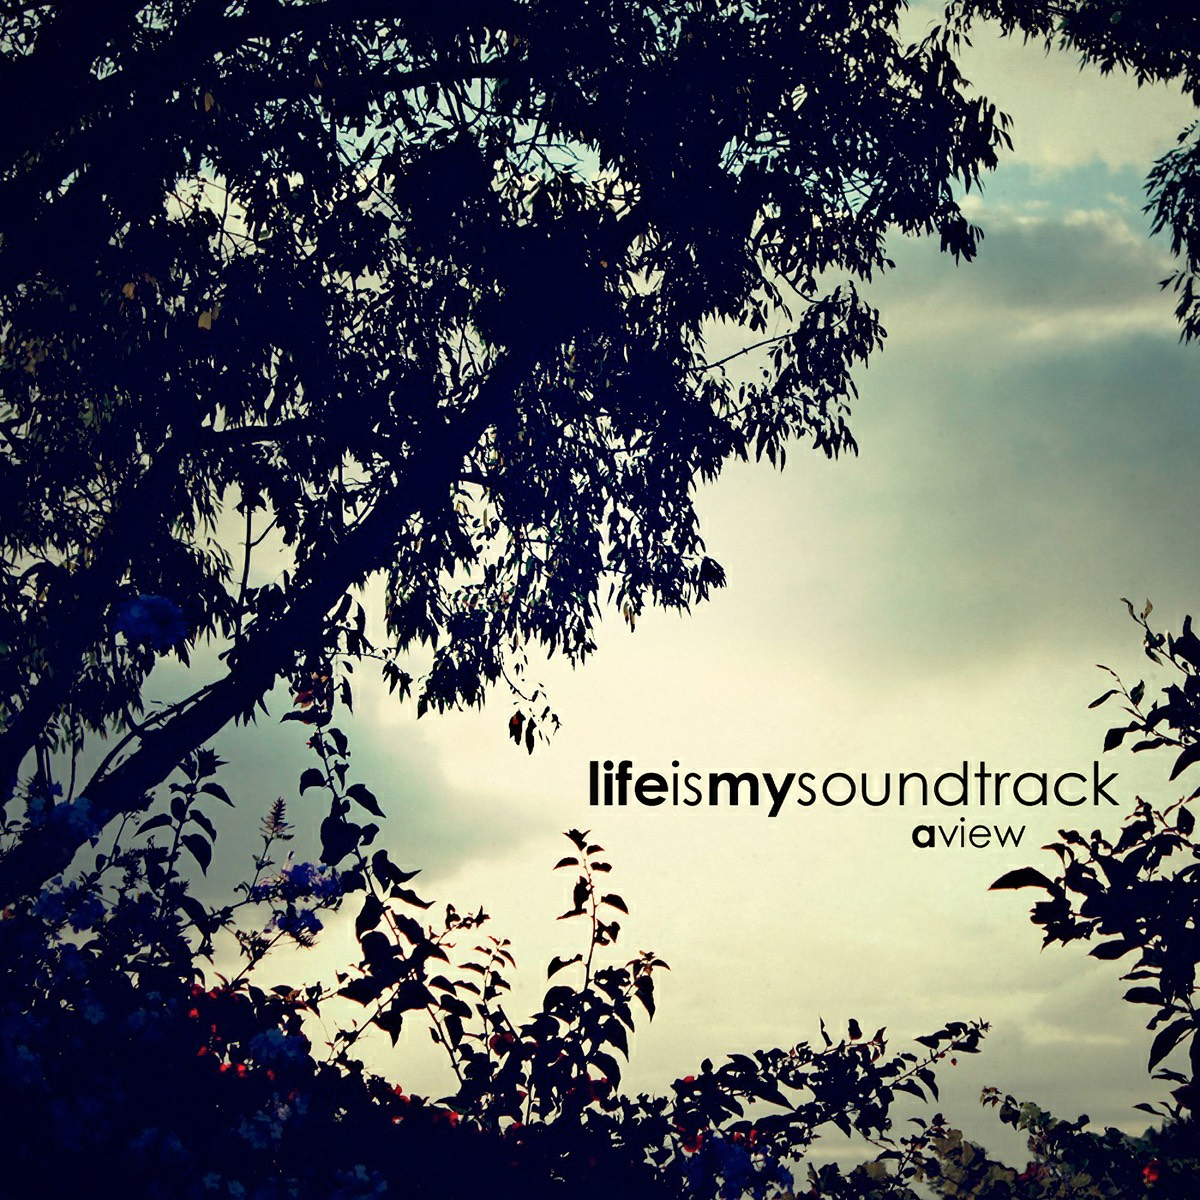 The album A View by Life Is My Soundtrack - Reflective songs to spark your imagination